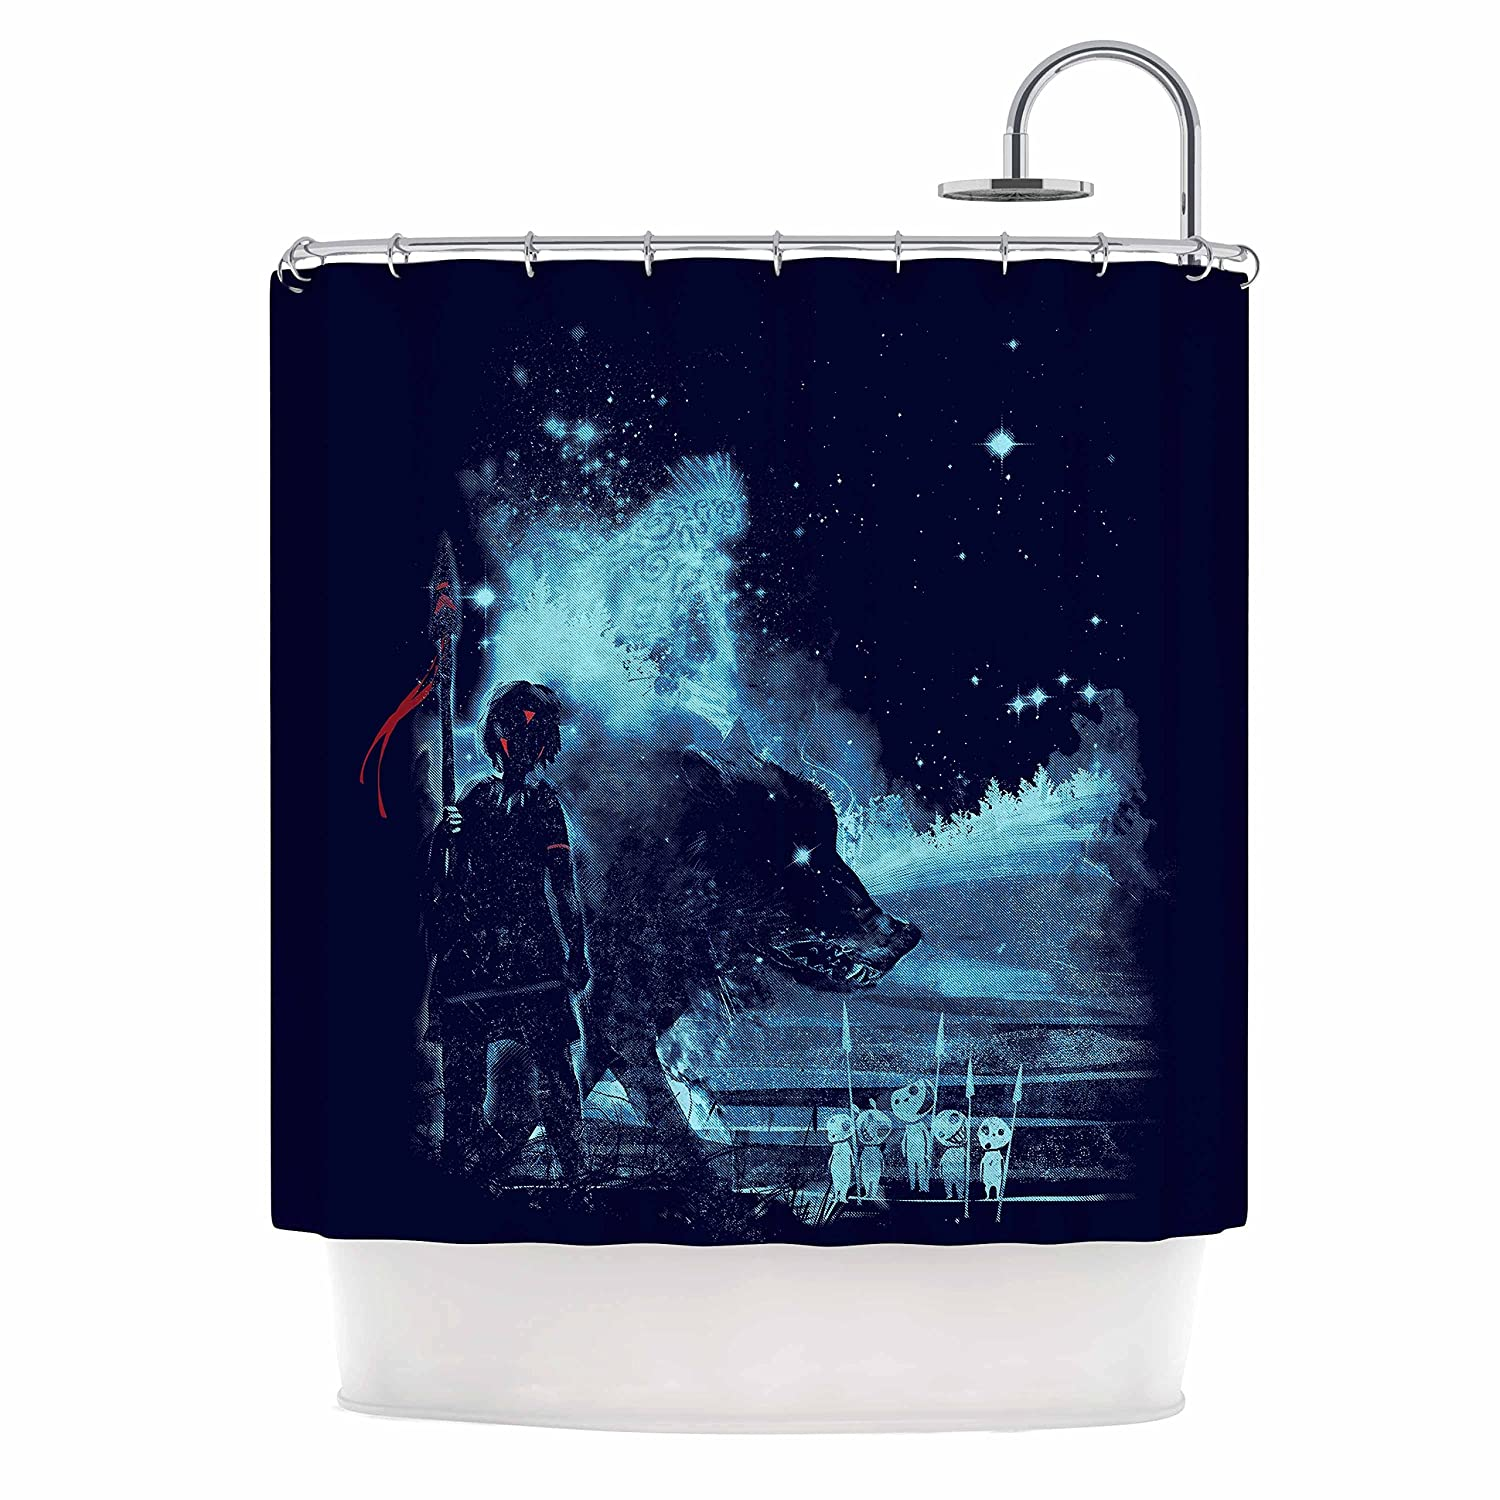 Kess InHouse Frederic Levy-Hadida Nature Defenders Blue Illustration 69 x 70 Shower Curtain